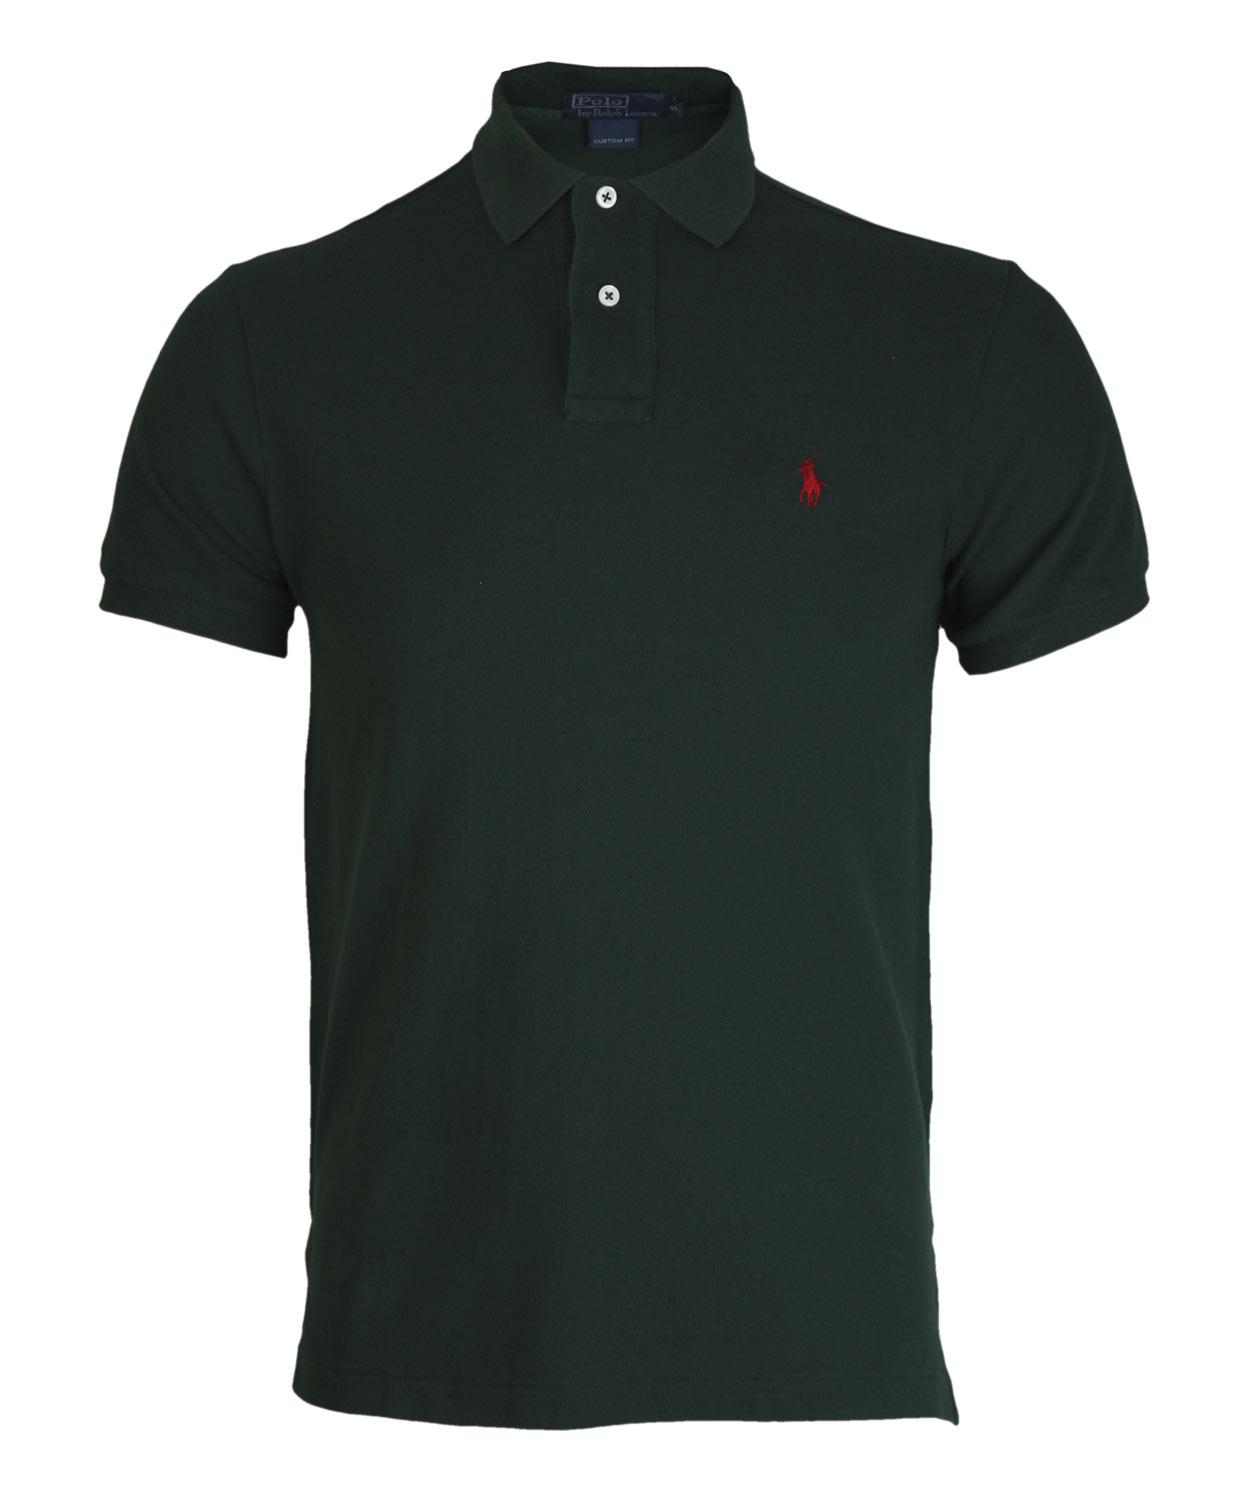 polo ralph lauren dark green polo shirt in green for men lyst. Black Bedroom Furniture Sets. Home Design Ideas